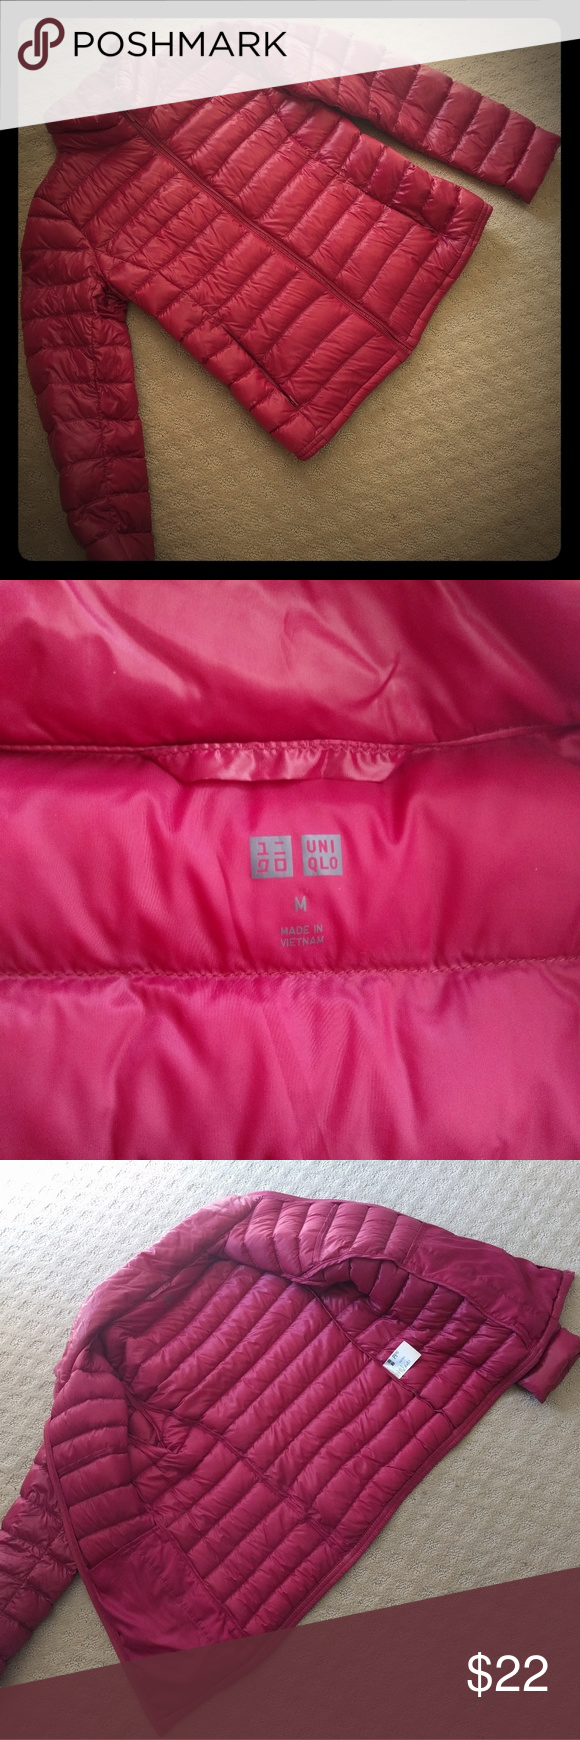 SOLD Uniqlo puffer down jacket in M Uniqlo puffer down